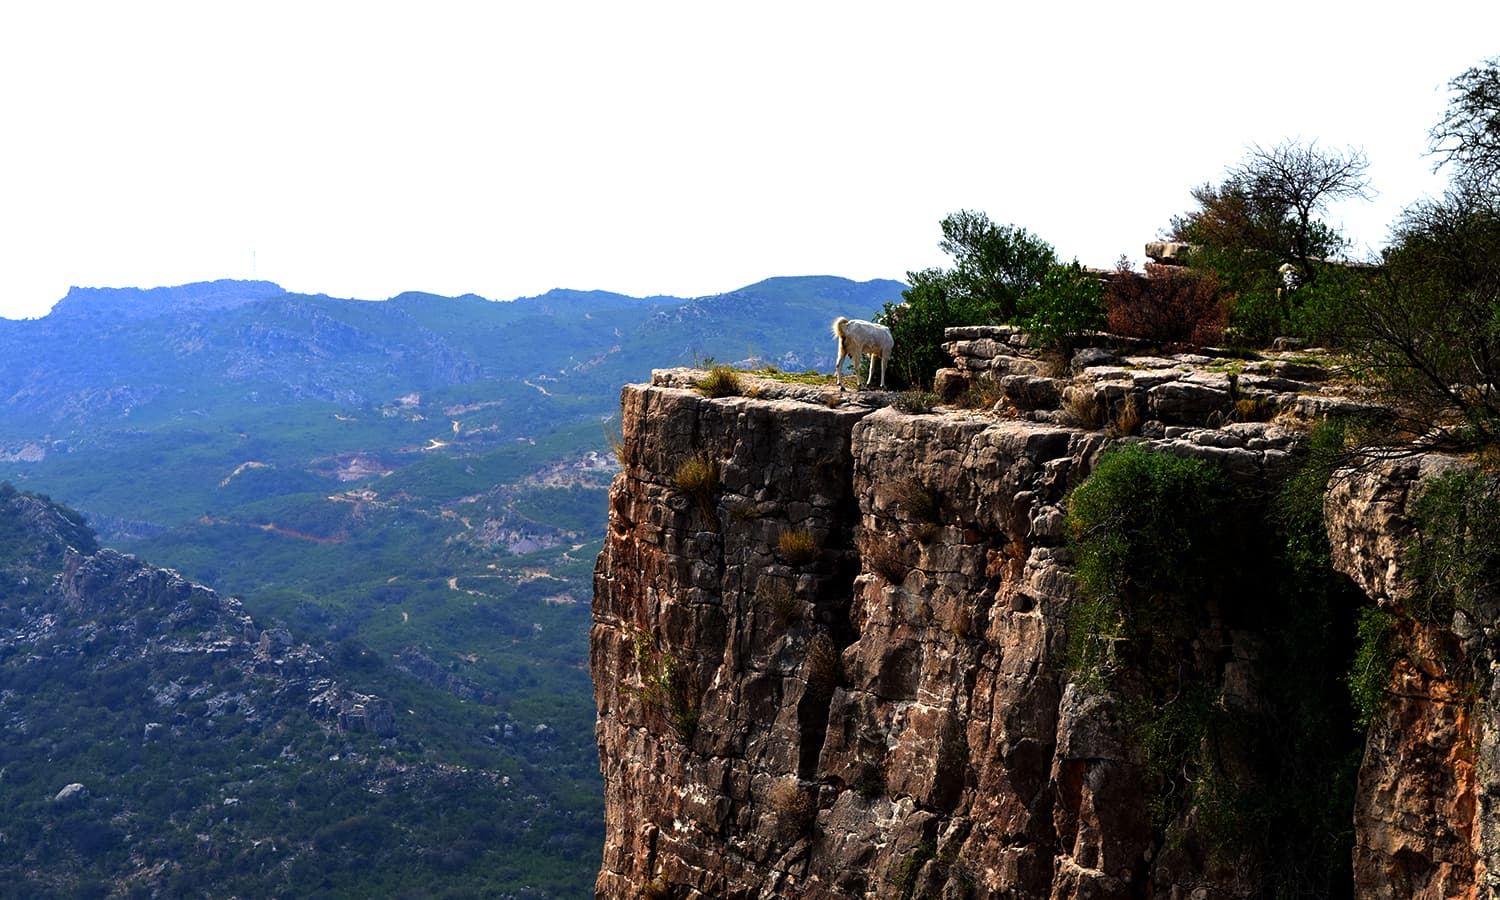 The vertical drop and natural fortress